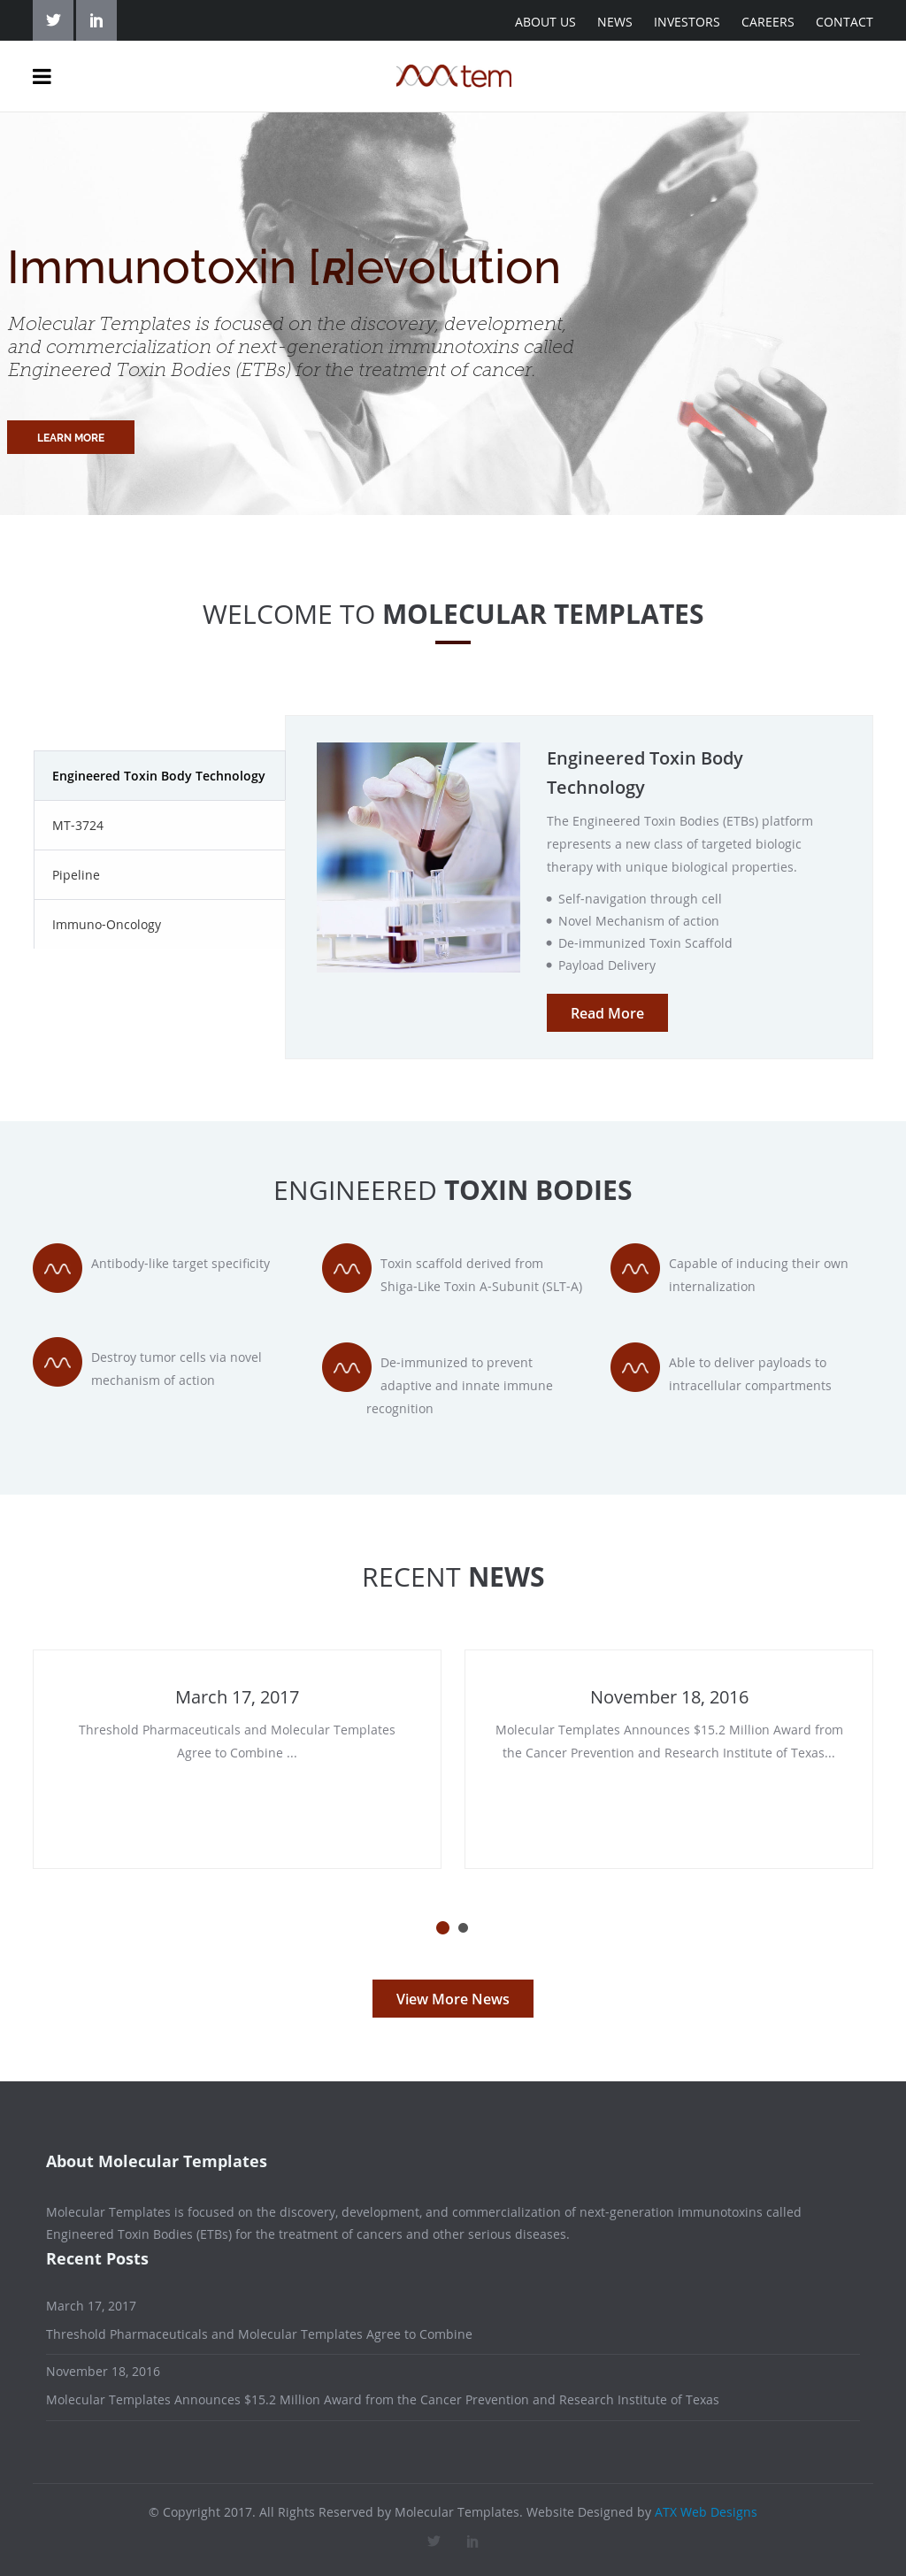 Mtem S Competitors Revenue Number Of Employees Funding Acquisitions News Owler Company Profile